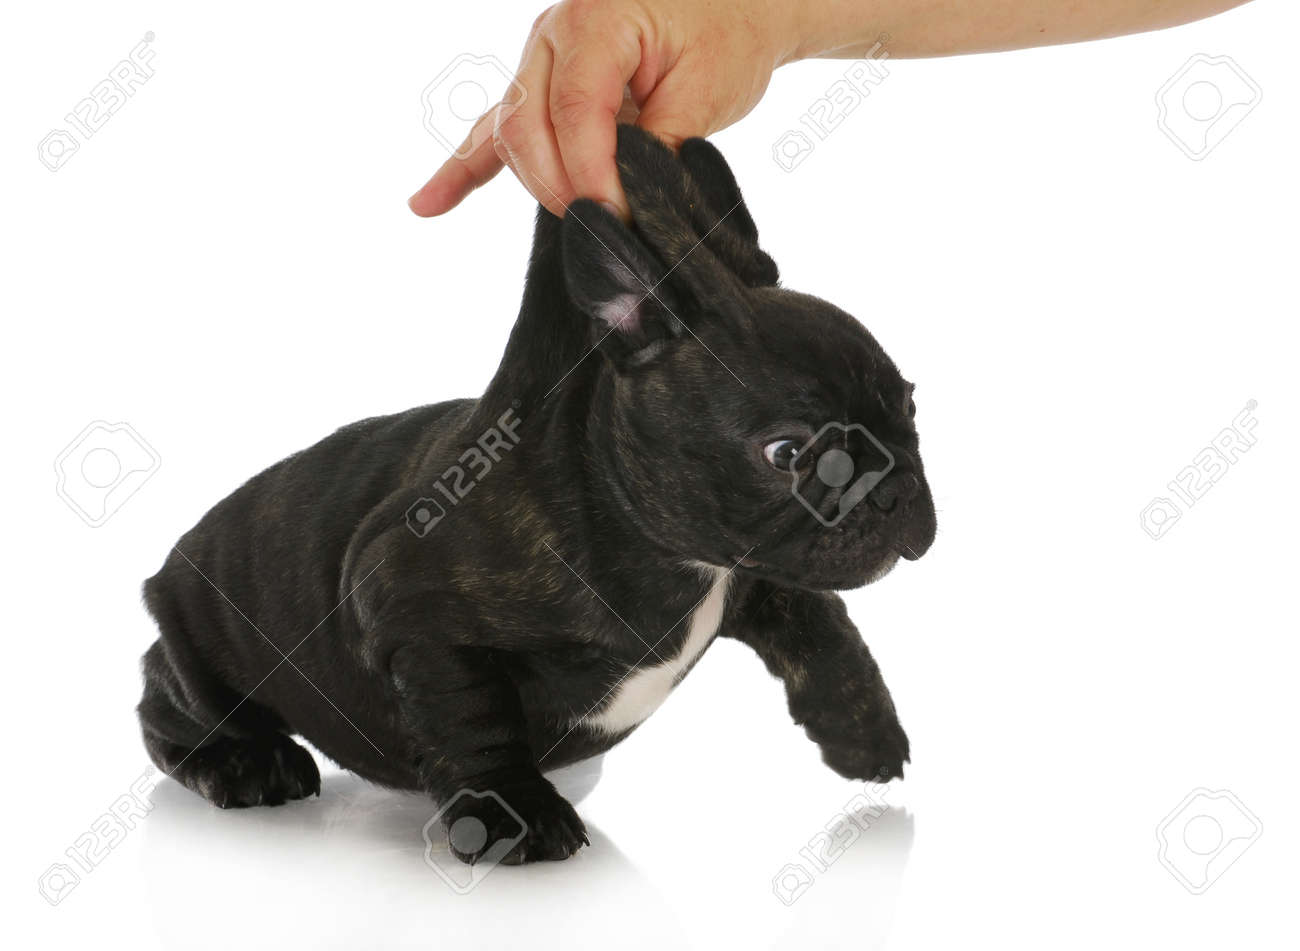 Naughty Puppy French Bulldog Puppy Being Picked Up By The Scruff